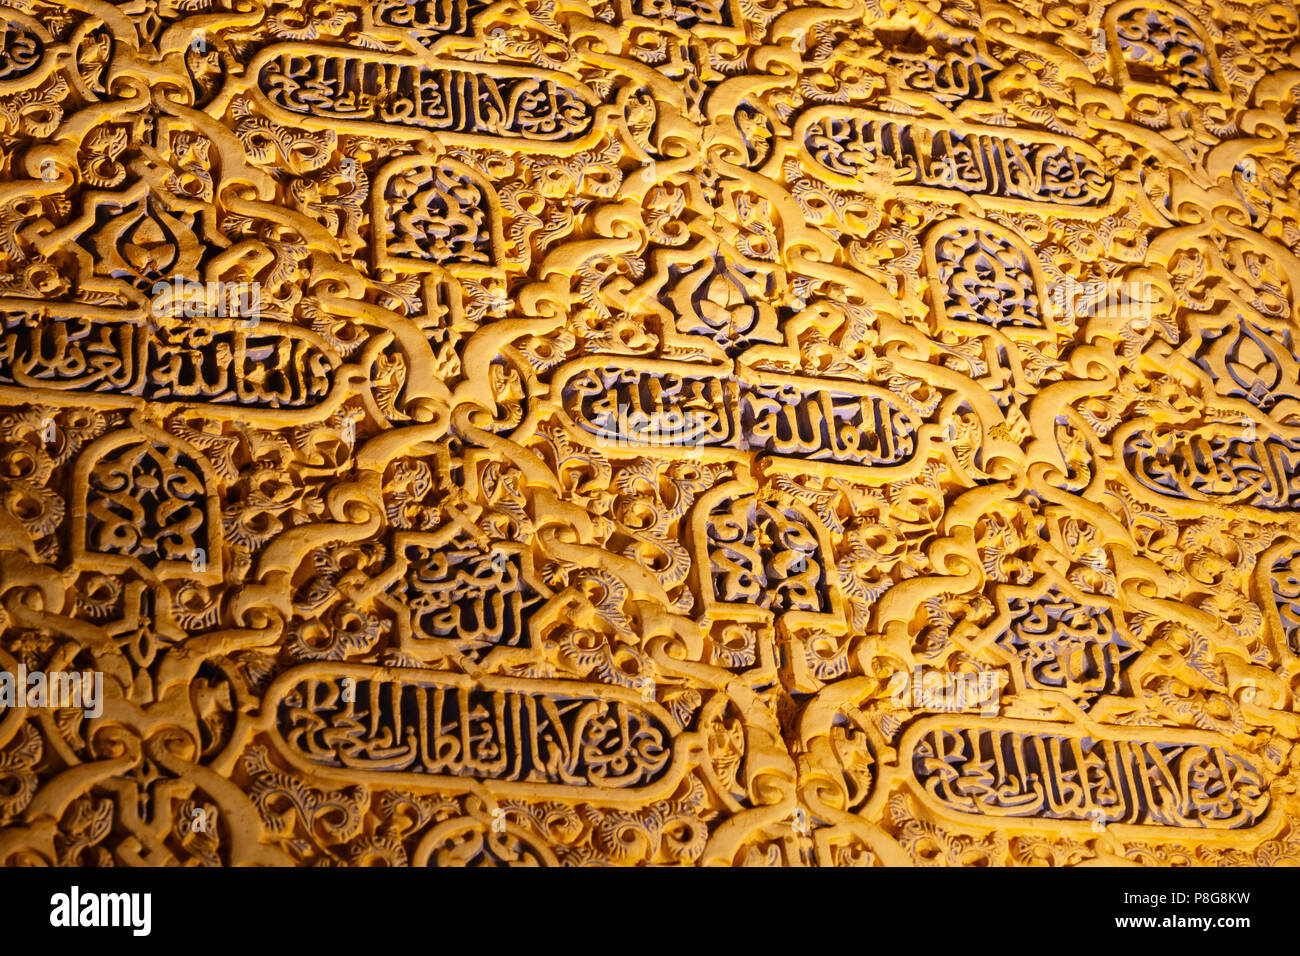 Decorative carving in wall plaster work in the Nasrid Palace. Alhambra, UNESCO World Heritage Site. Granada City. Andalusia, Southern Spain Europe Stock Photo